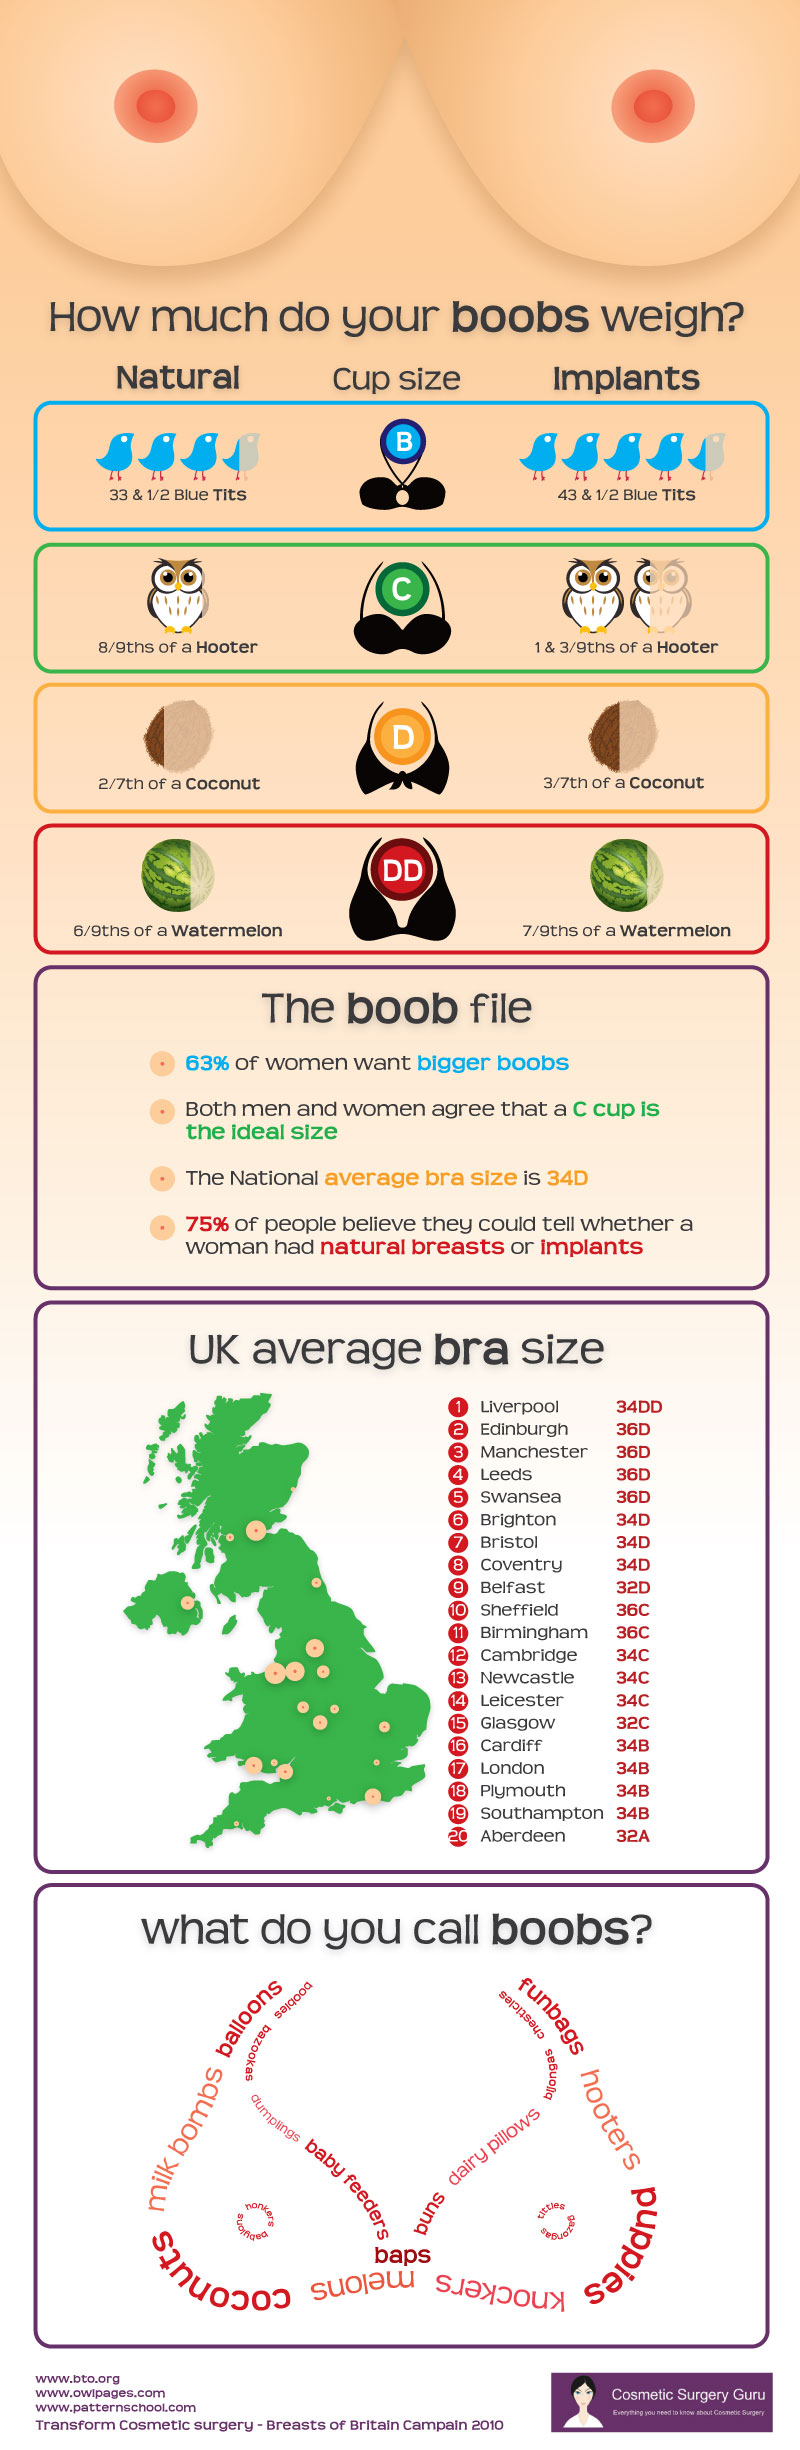 How Much Do Your Boobs Weigh